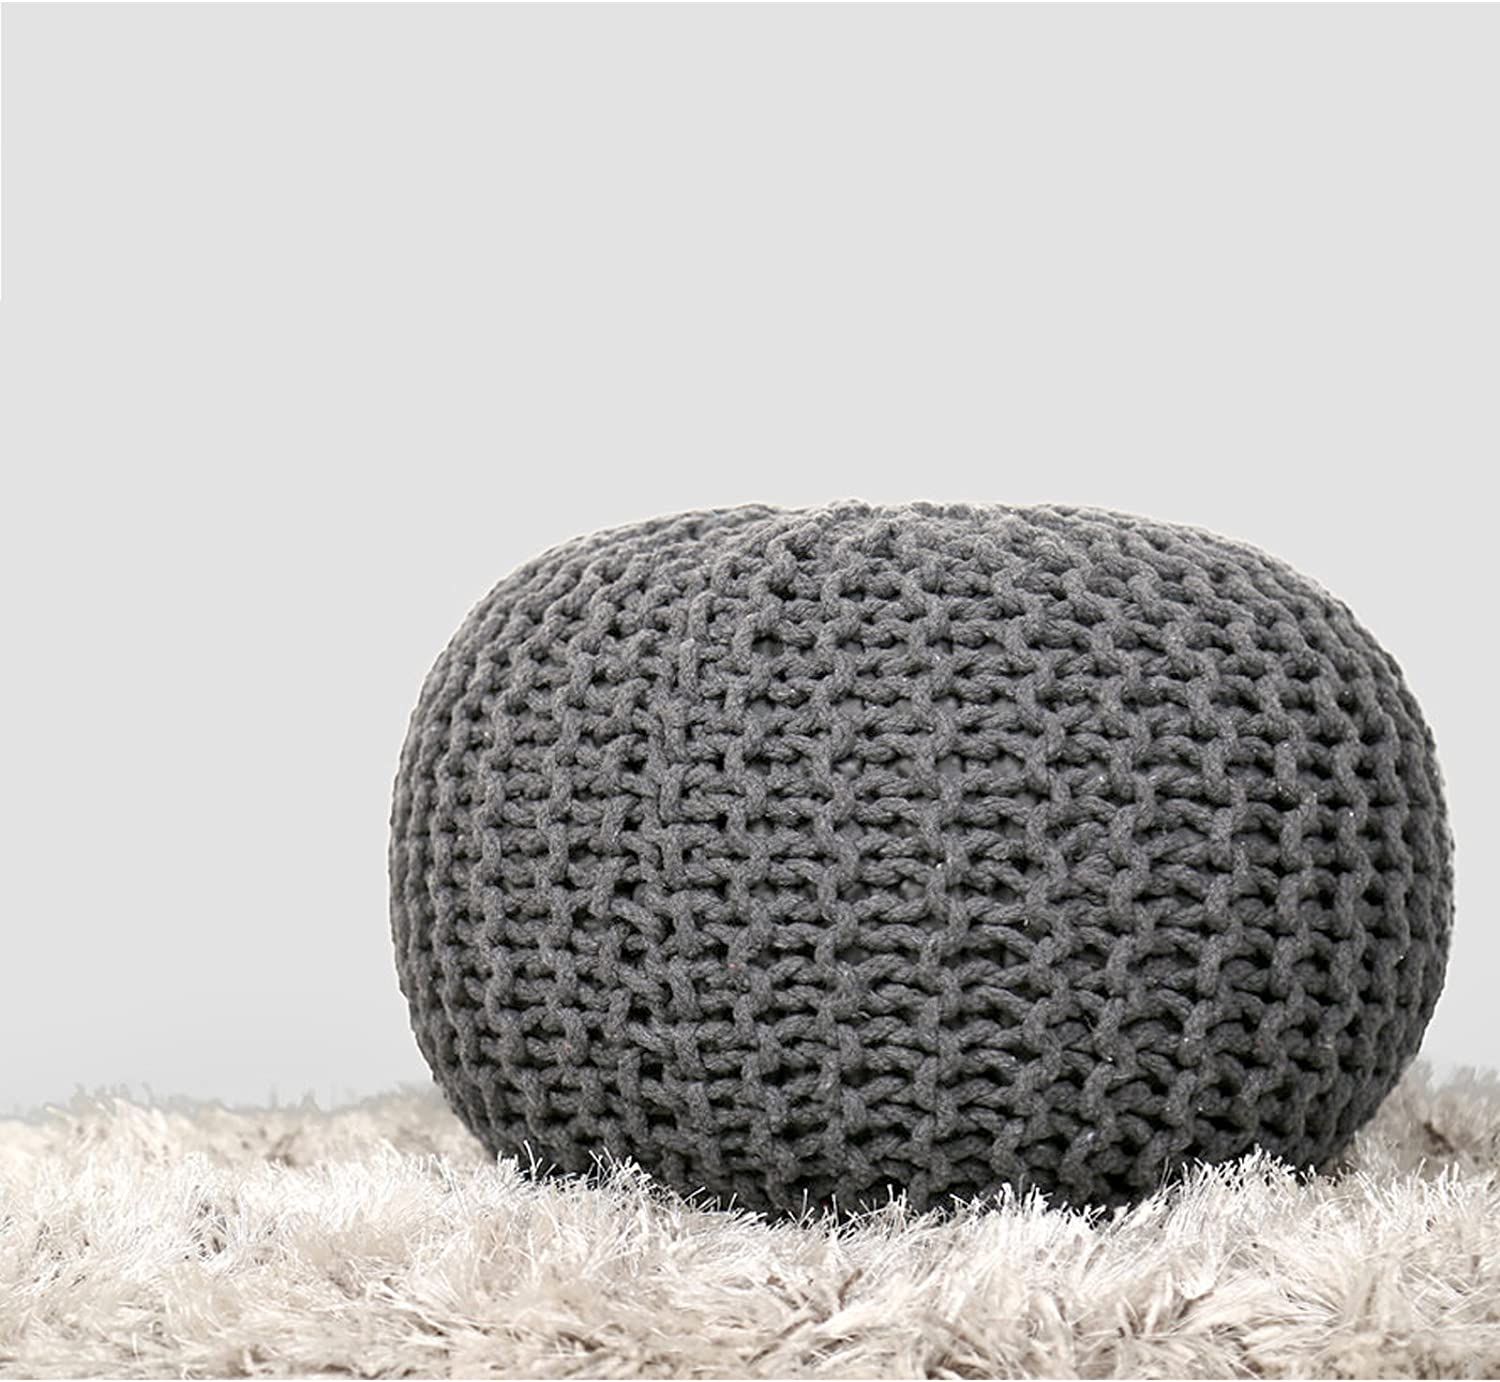 RAJRANG BRINGING RAJASTHAN TO YOU Boho Home Decor Seating Round Ottoman - Macrame Cotton Cord Woven Stuffed Floor Pouf Decorative Room Furniture Patio Outside Puff - Light Gray - 20 X 14 Inches